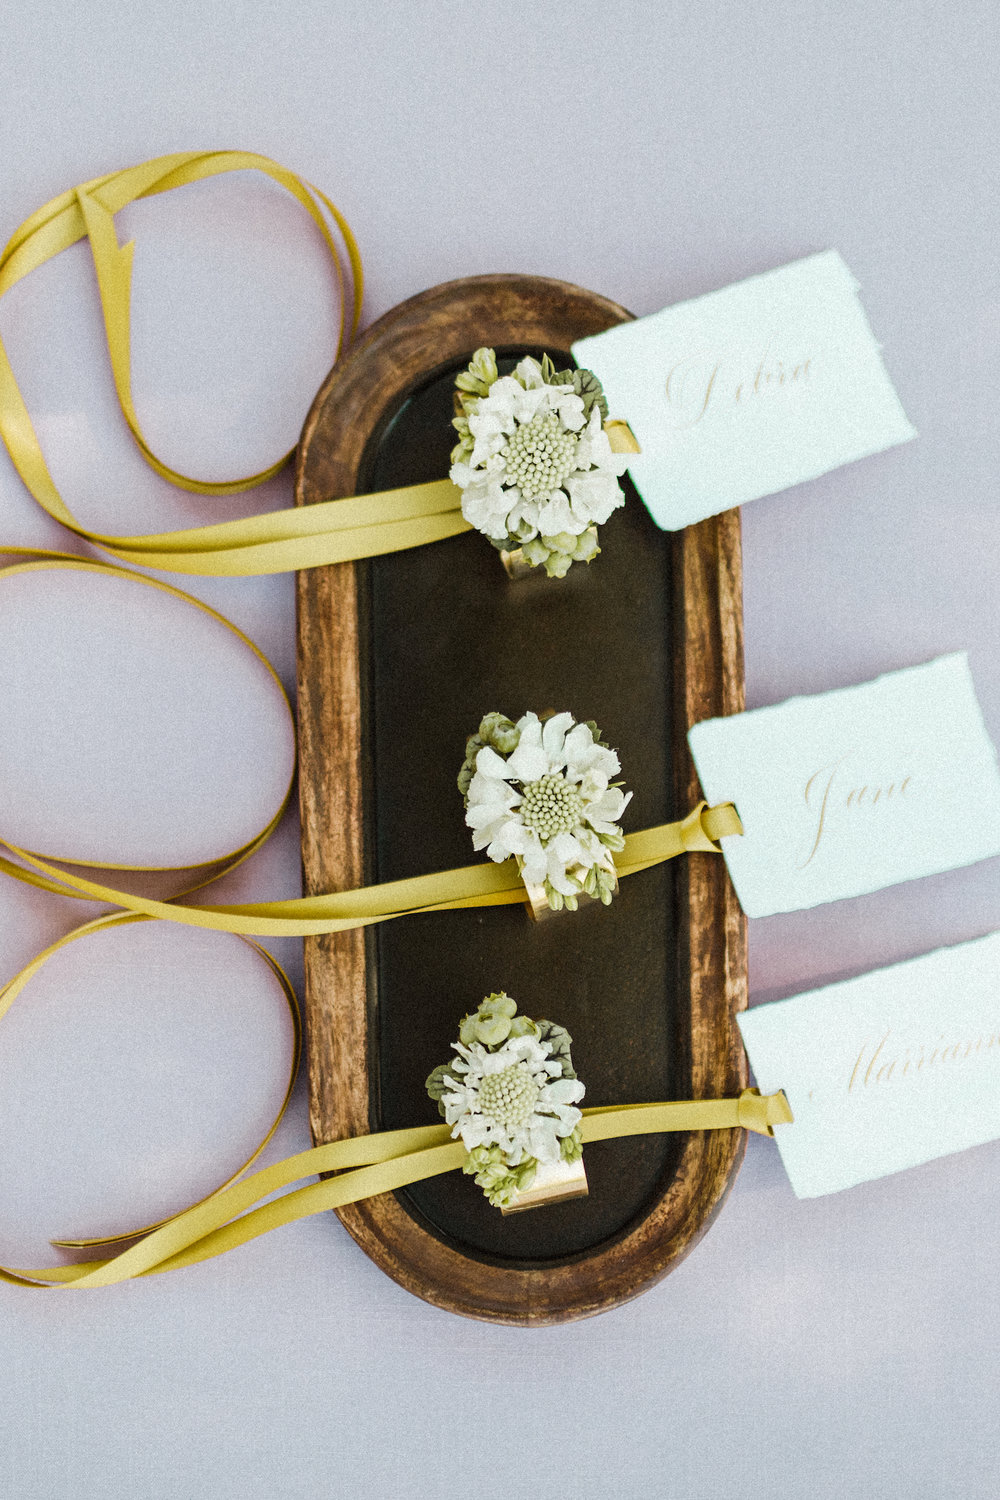 Julianne Hough and Brooks Laich Wedding - Wild Bloom Floral - Sarah Falugo Photography - Simply Troy Event Design 33.jpg